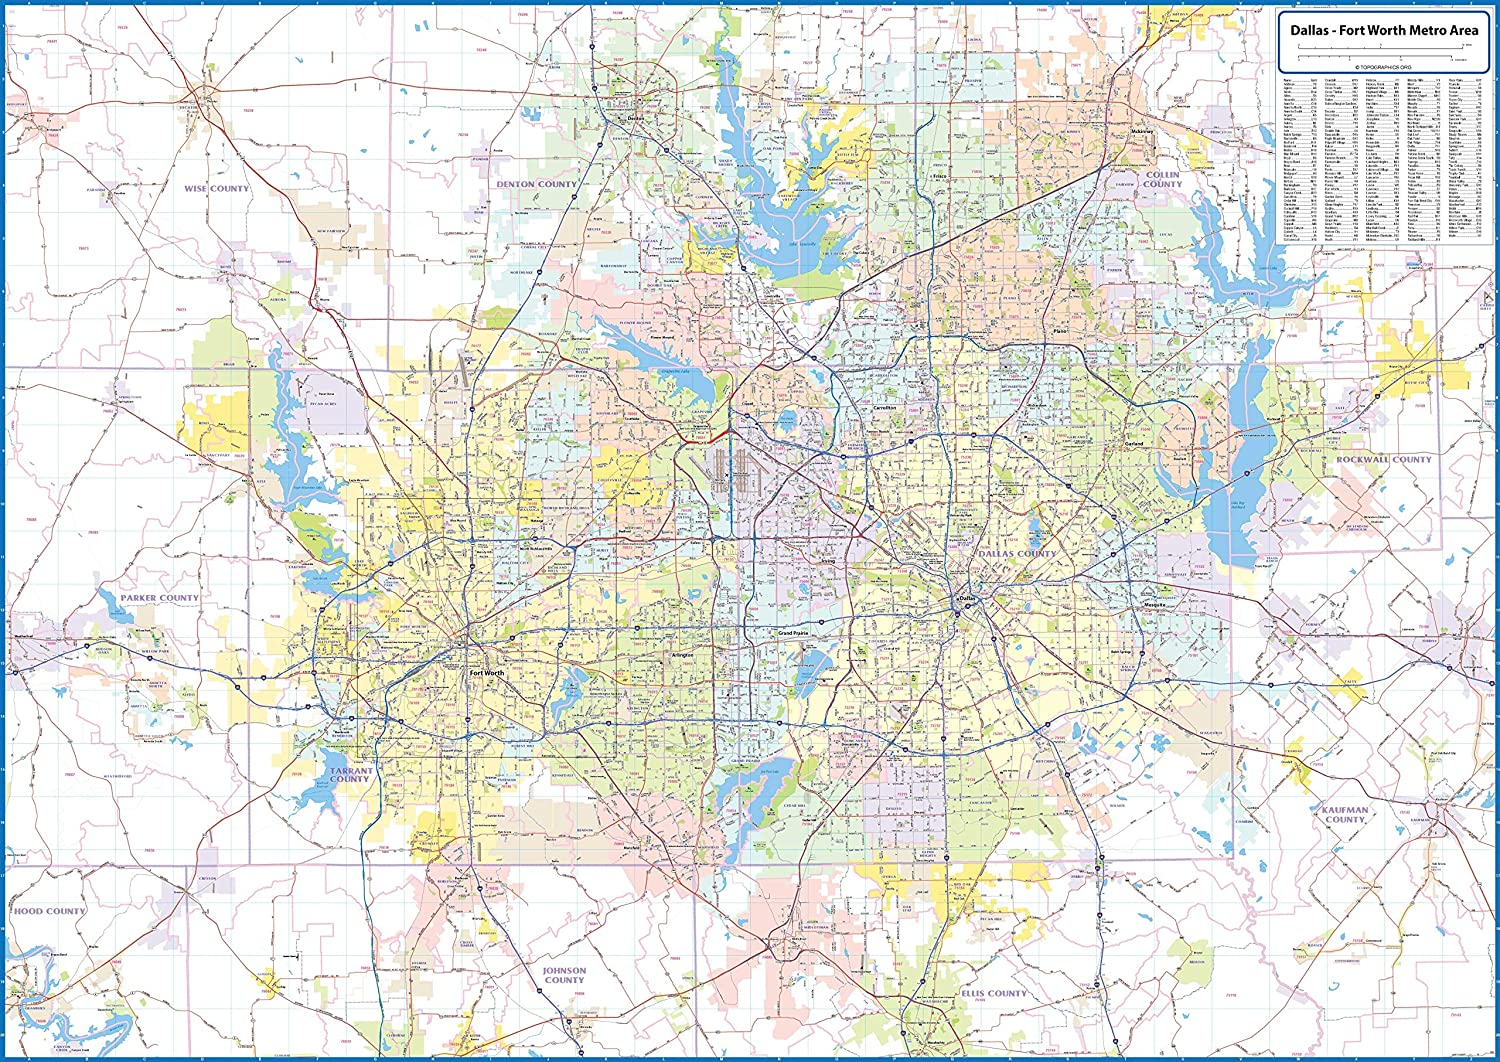 Dallas - Fort Worth Metro Area Laminated Wall Map on dallas ft.worth, dallas fort worth airport map, dallas fort worth texas map, ft.worth map, arlington and fort worth map, greater dallas fort worth map, dallas fort worth map vector, dallas fort worth area, dallas fort worth metroplex cities,